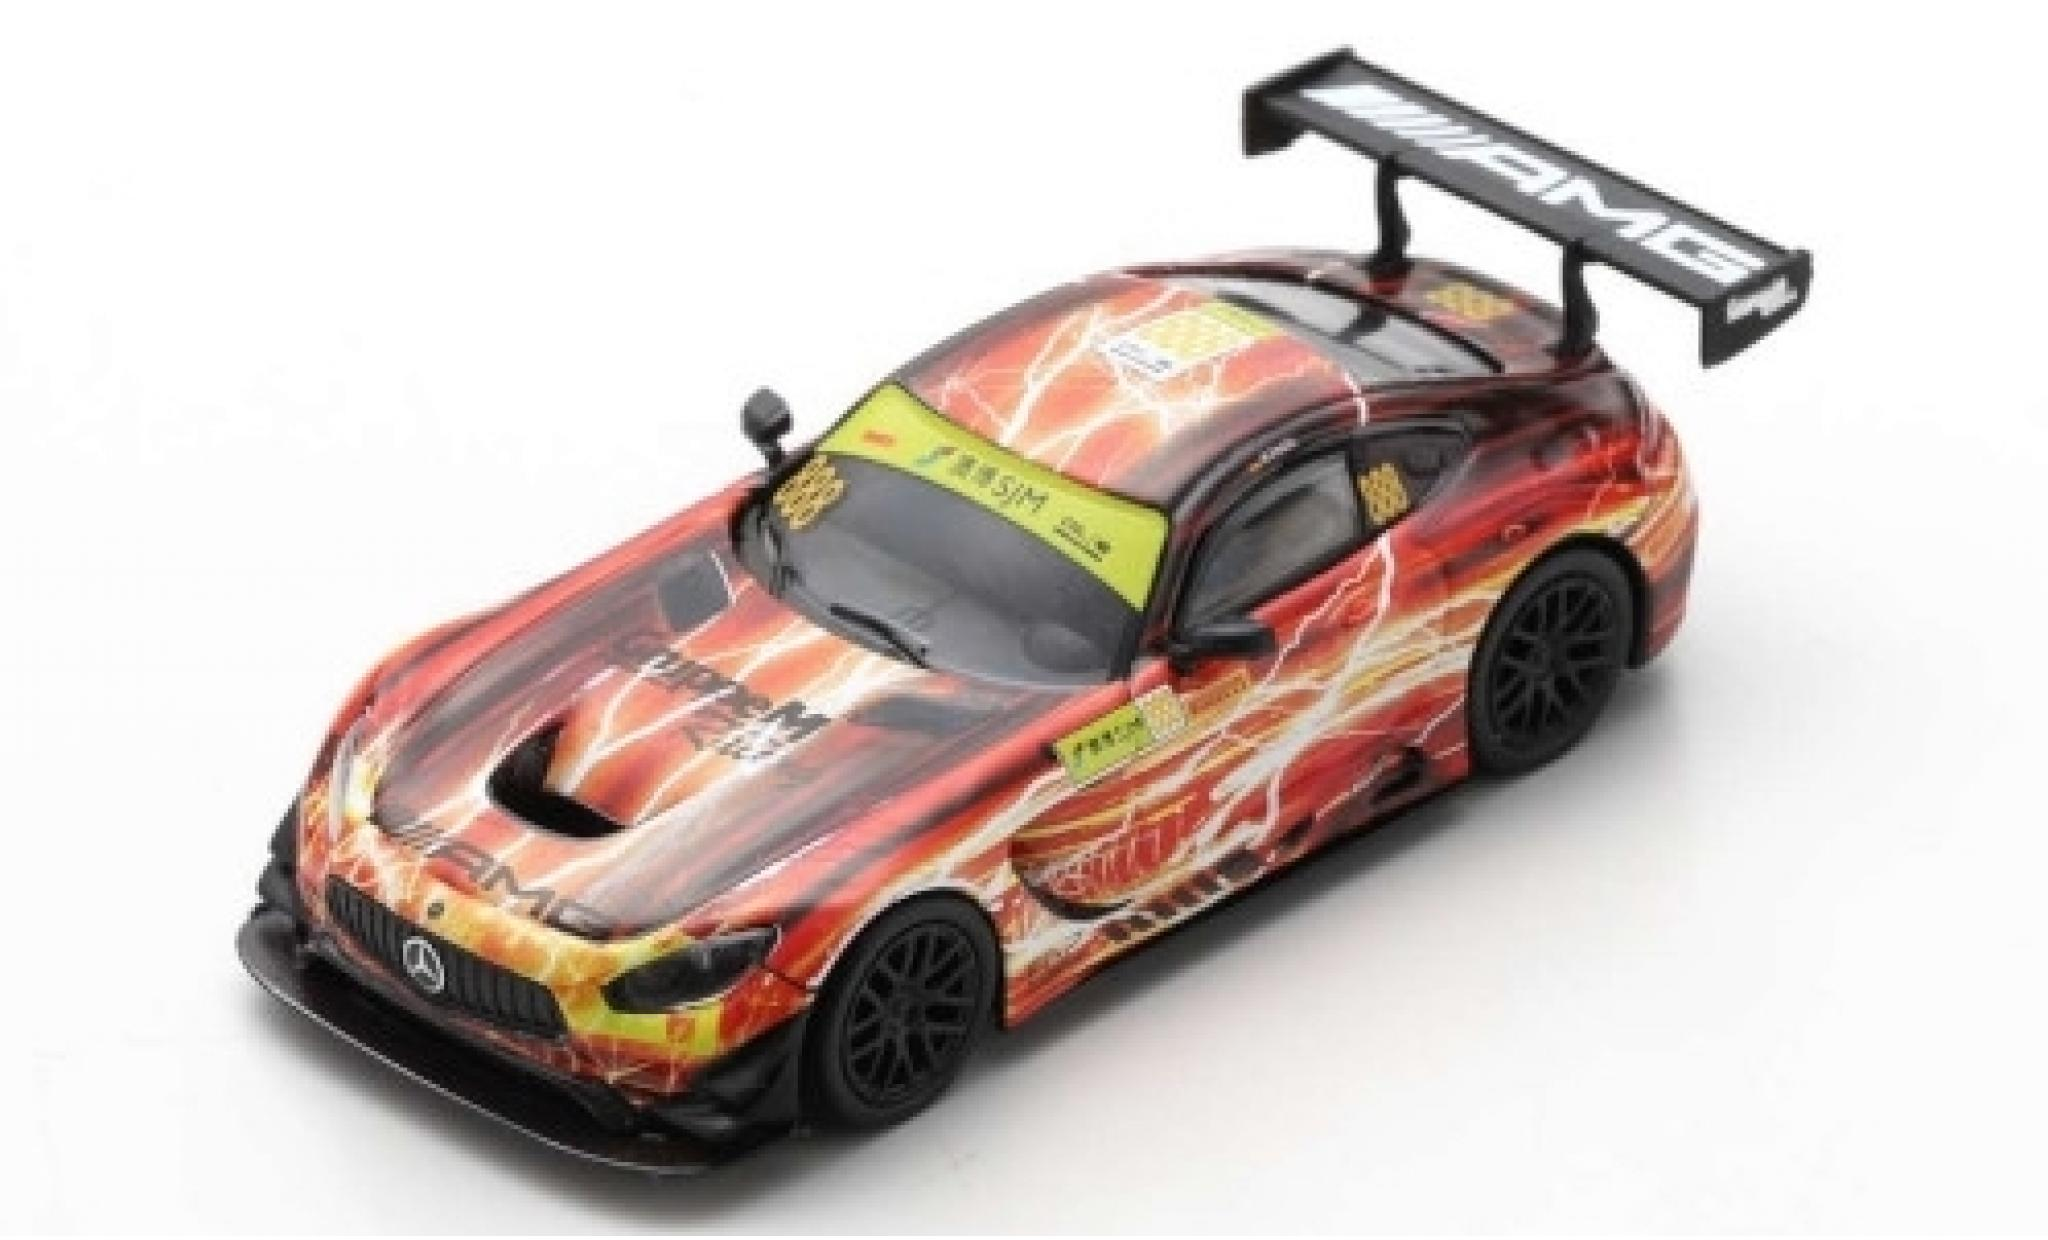 Mercedes AMG GT 1/43 Spark 3 No.888 -AMG Team GruppeM Racing Fia GT World Cup Macau 2019 M.Engel